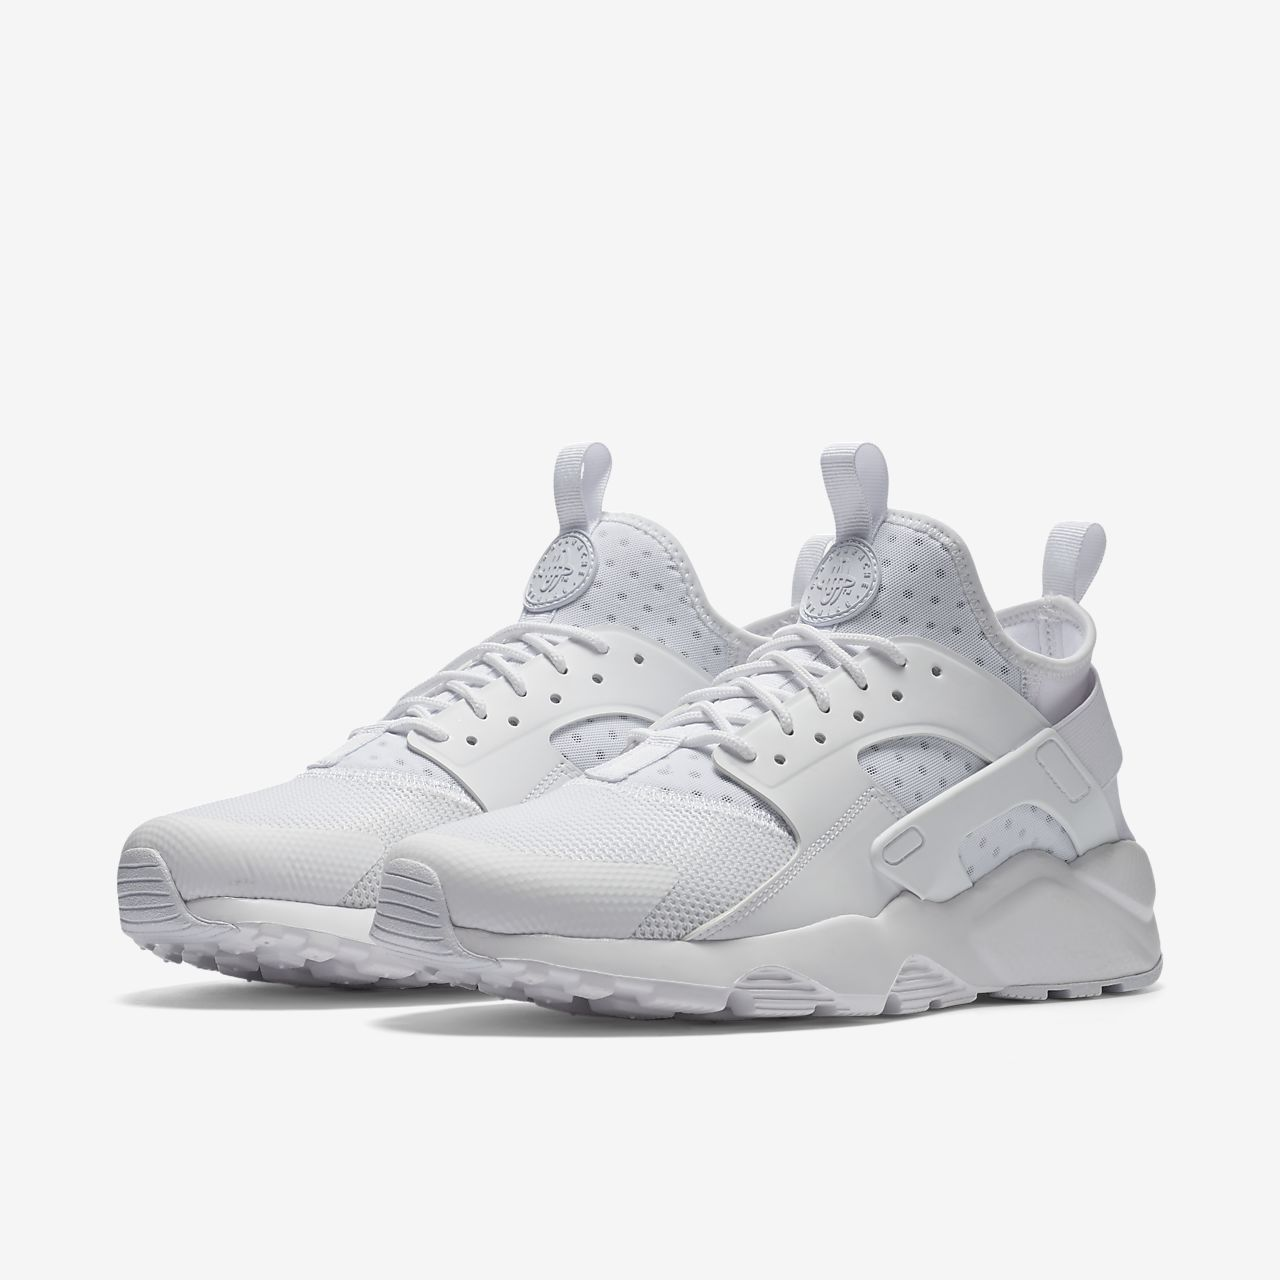 ff9c0e25299c Nike Air Huarache Ultra Men s Shoe. Nike.com CA